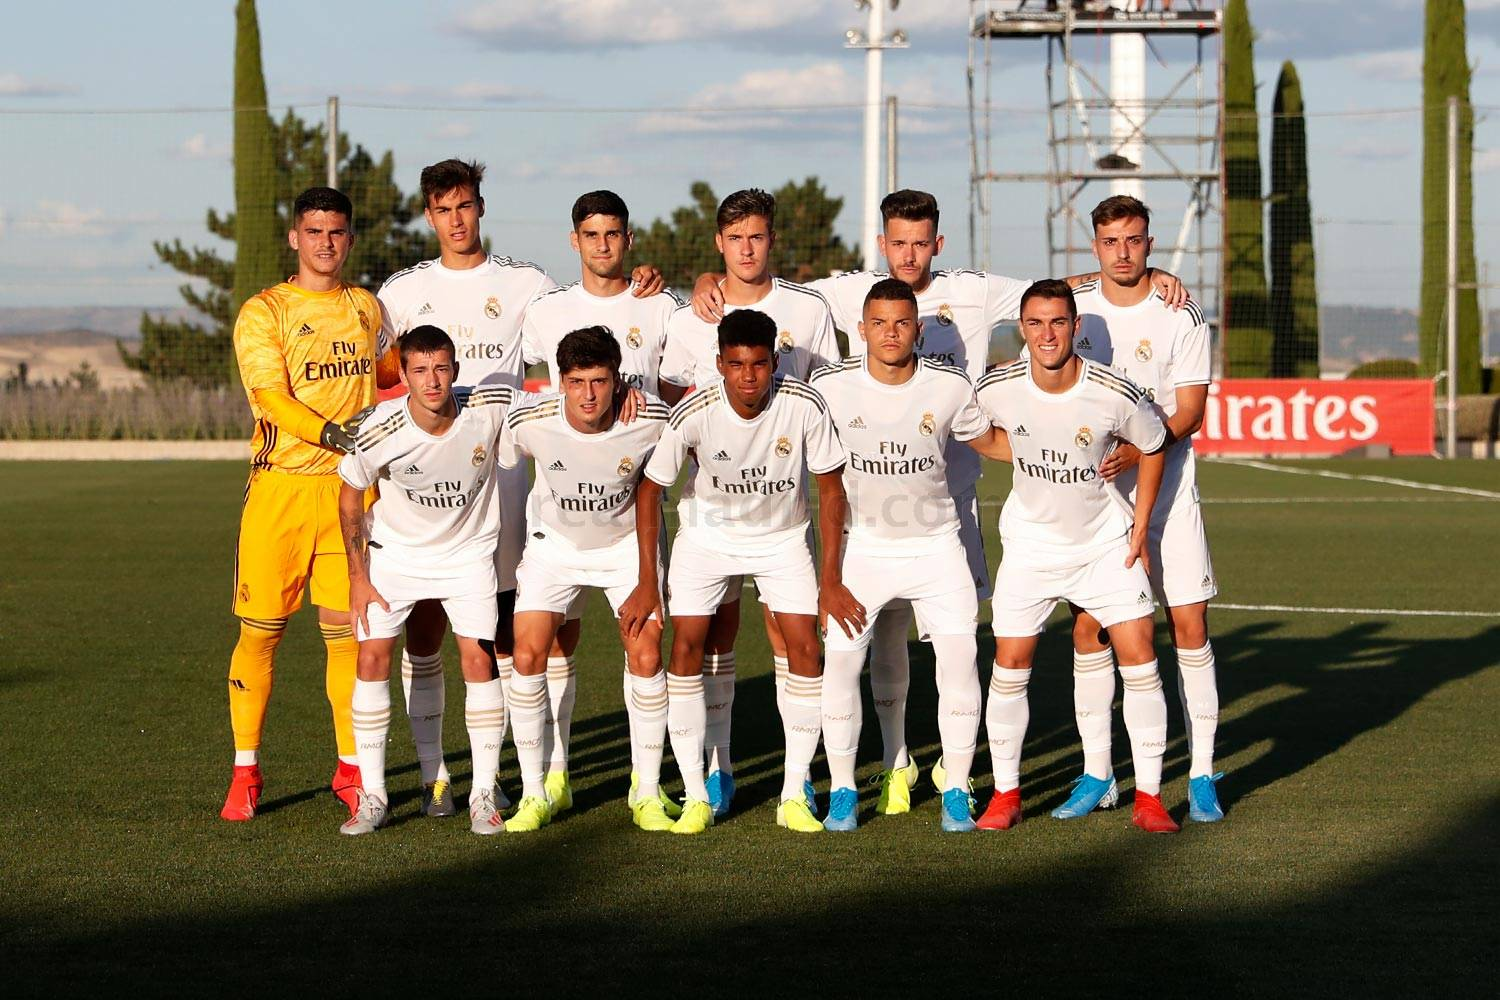 Real Madrid - Real Madrid Castilla-Mirandés - 27-07-2019